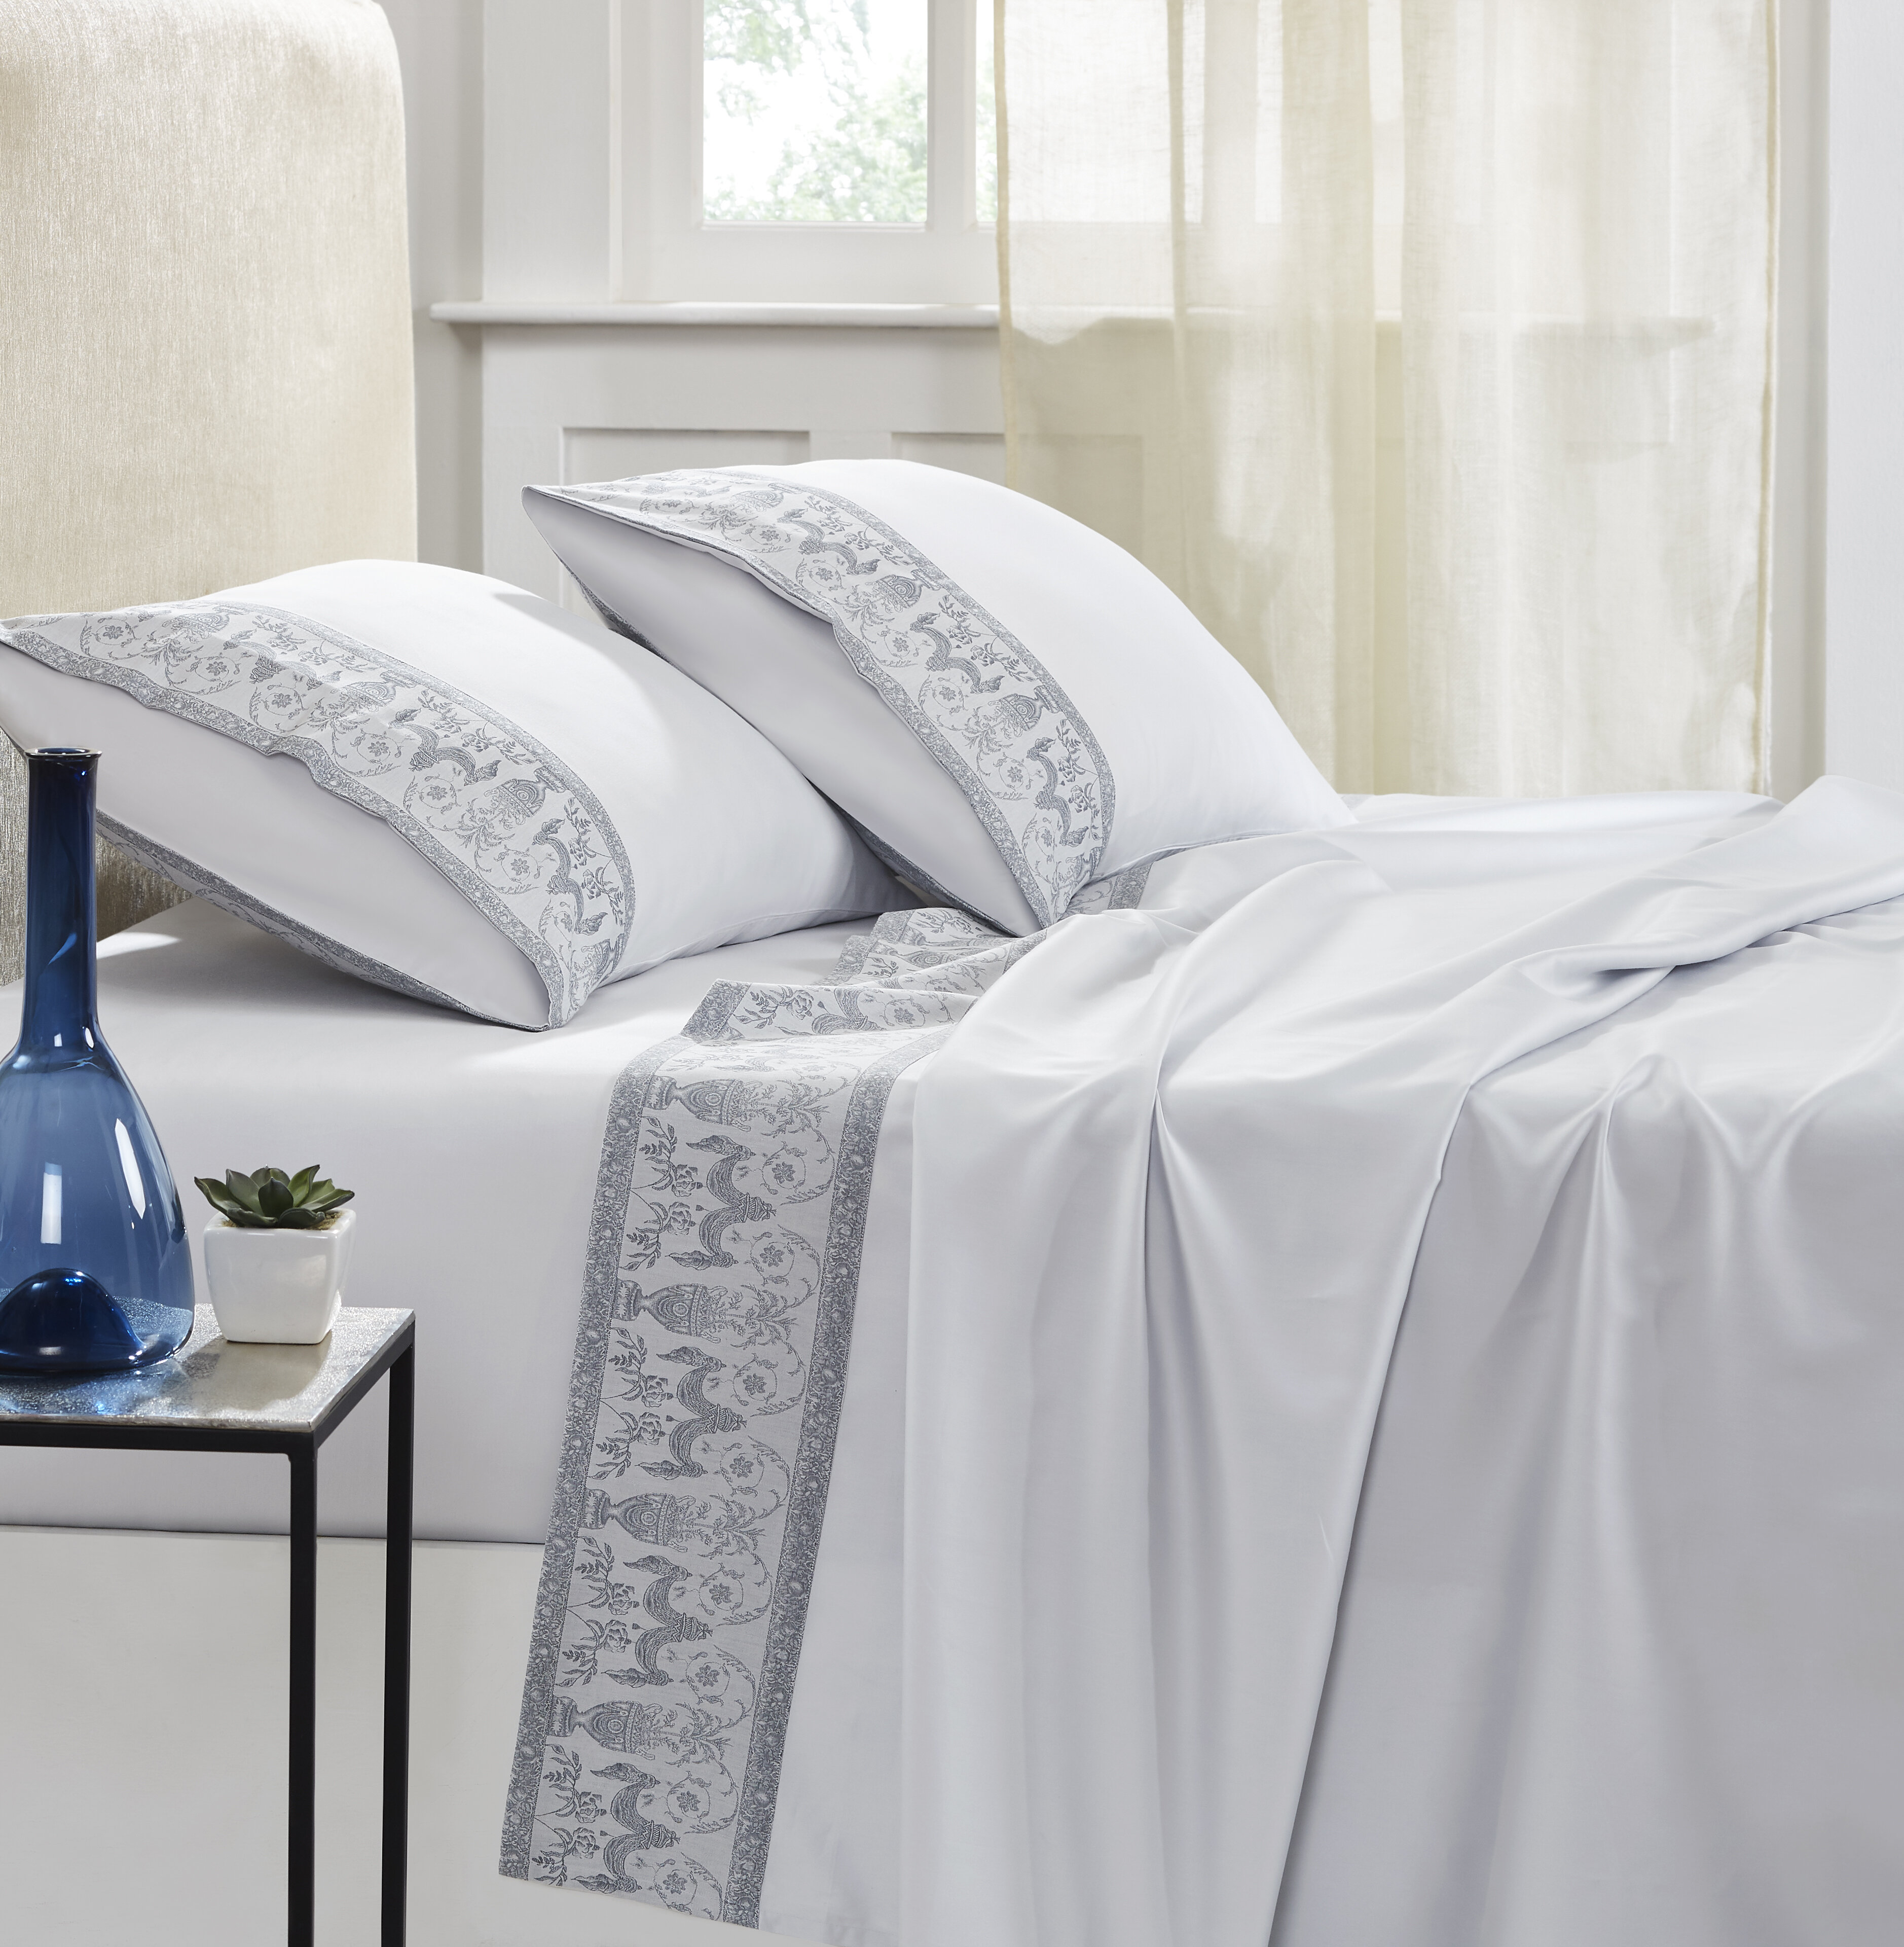 Orchid Lux Home Promenade 300 Thread Count 100 Cotton Fitted Sheet Wayfair